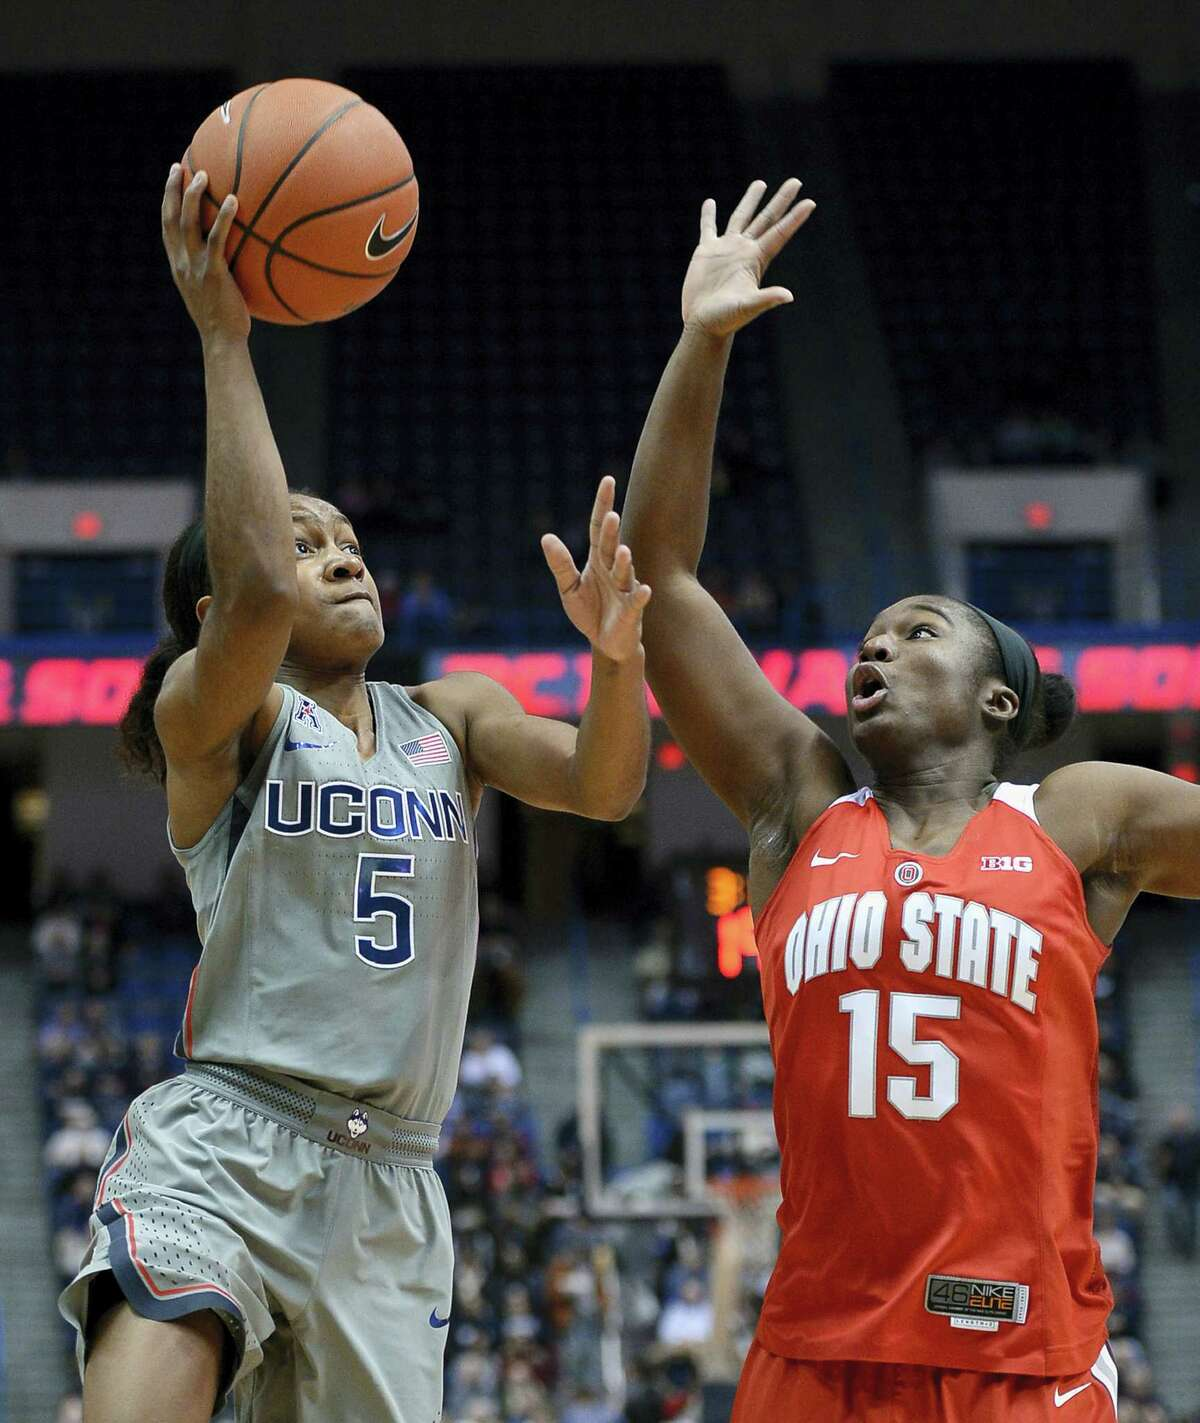 UConn's Crystal Dangerfield shoots as Ohio State's Linnae Harper defends, in the first half.